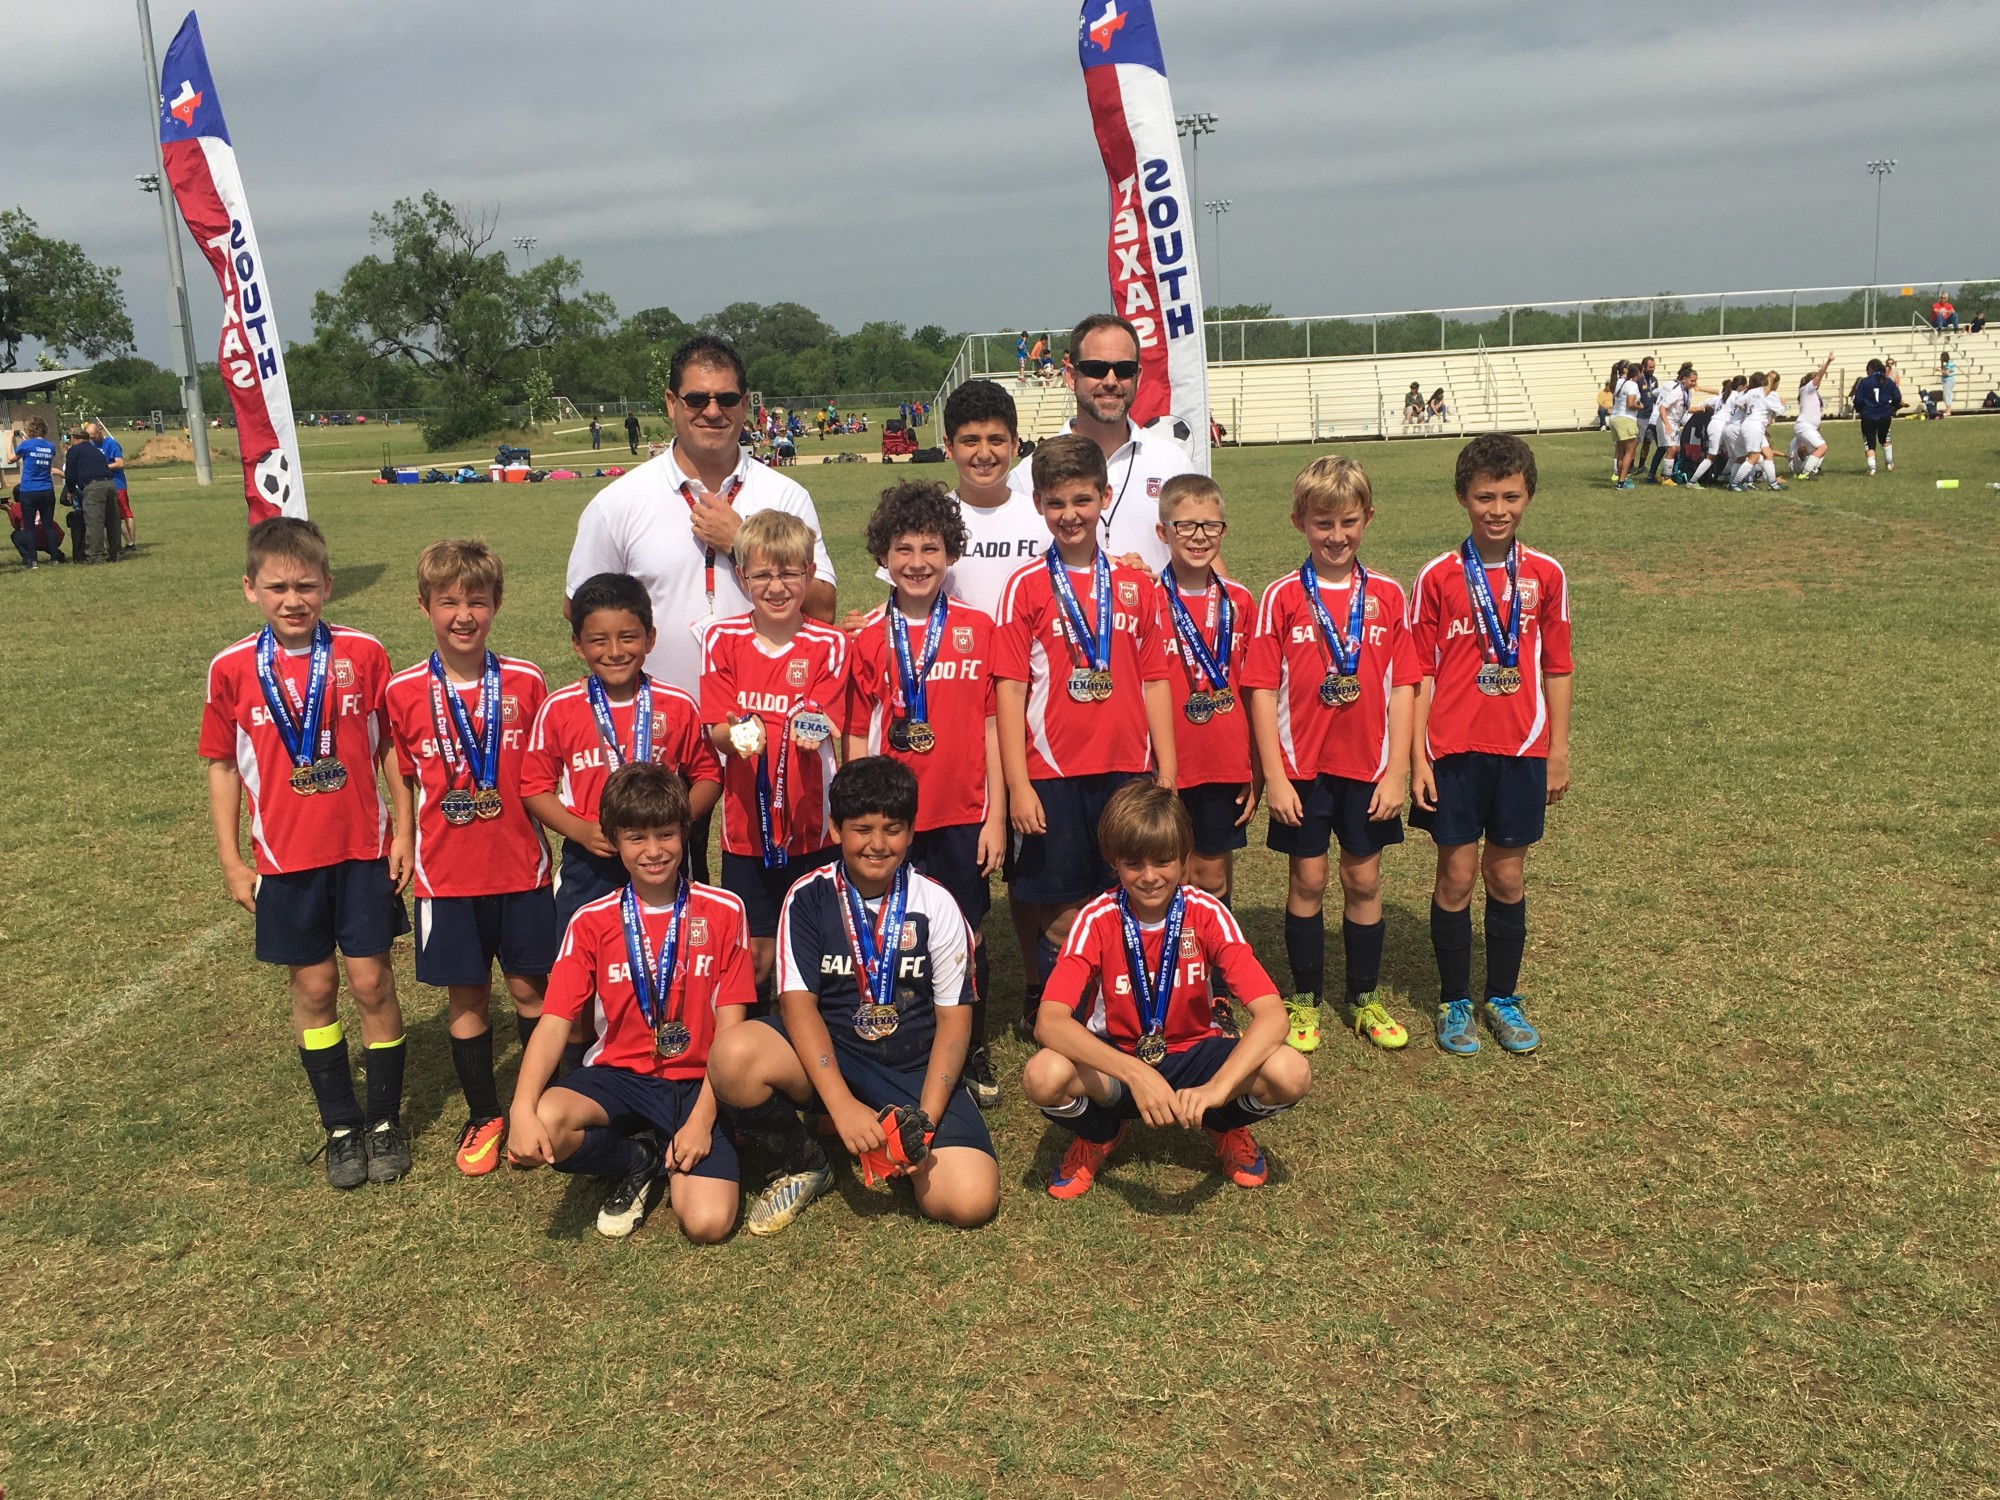 CONGRATS to FC Salado u11 boys 2nd place finish in state!